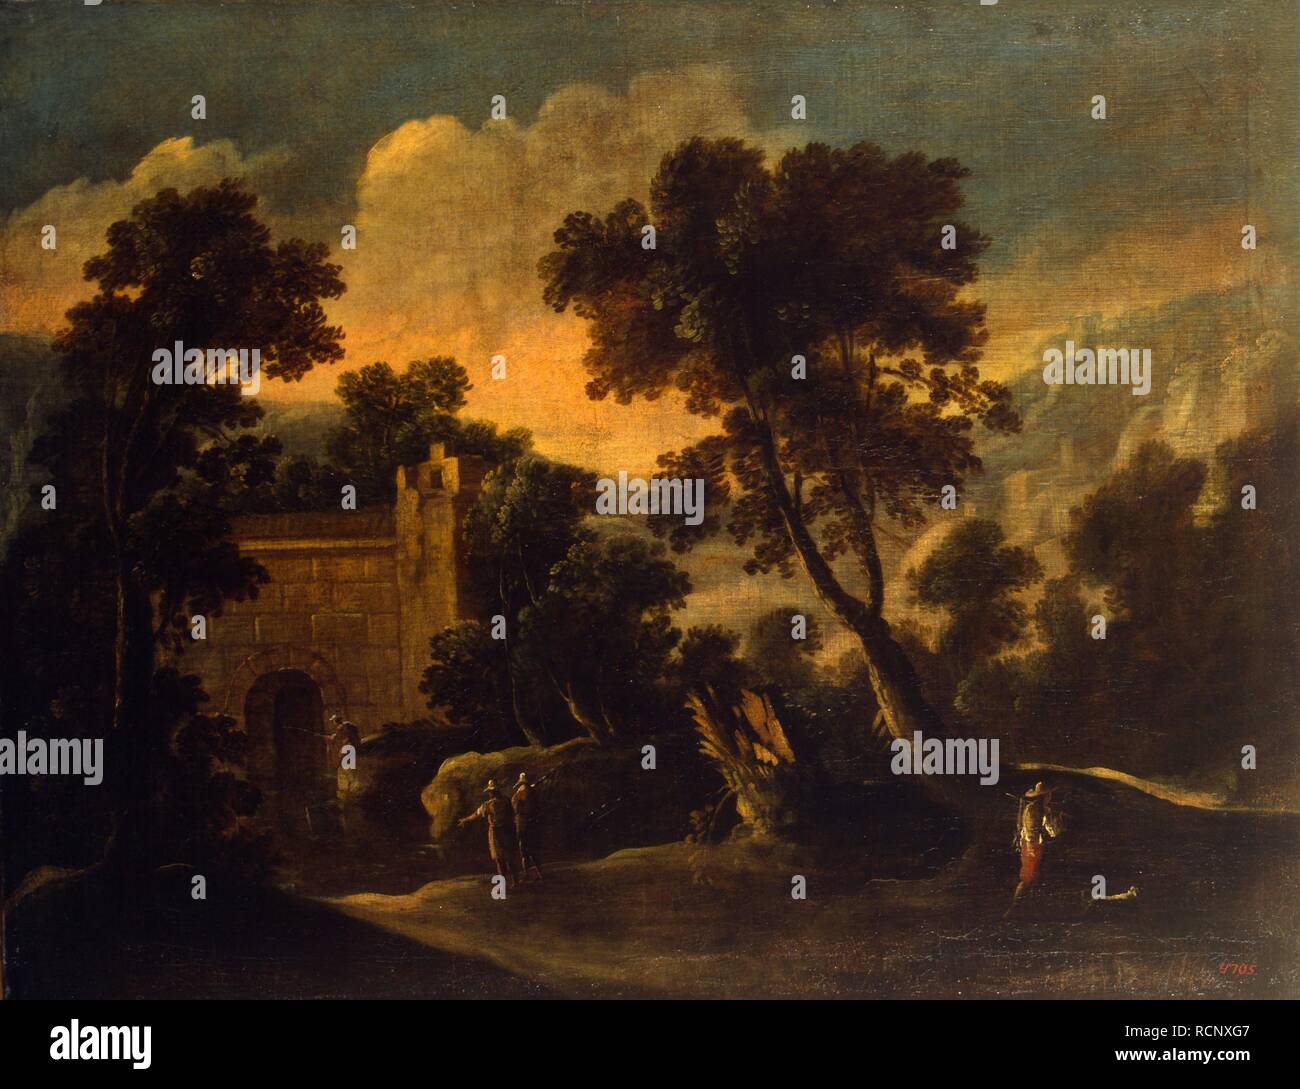 Landscape with Ruins. Museum: State Hermitage, St. Petersburg. Author: Collantes, Francisco. - Stock Image